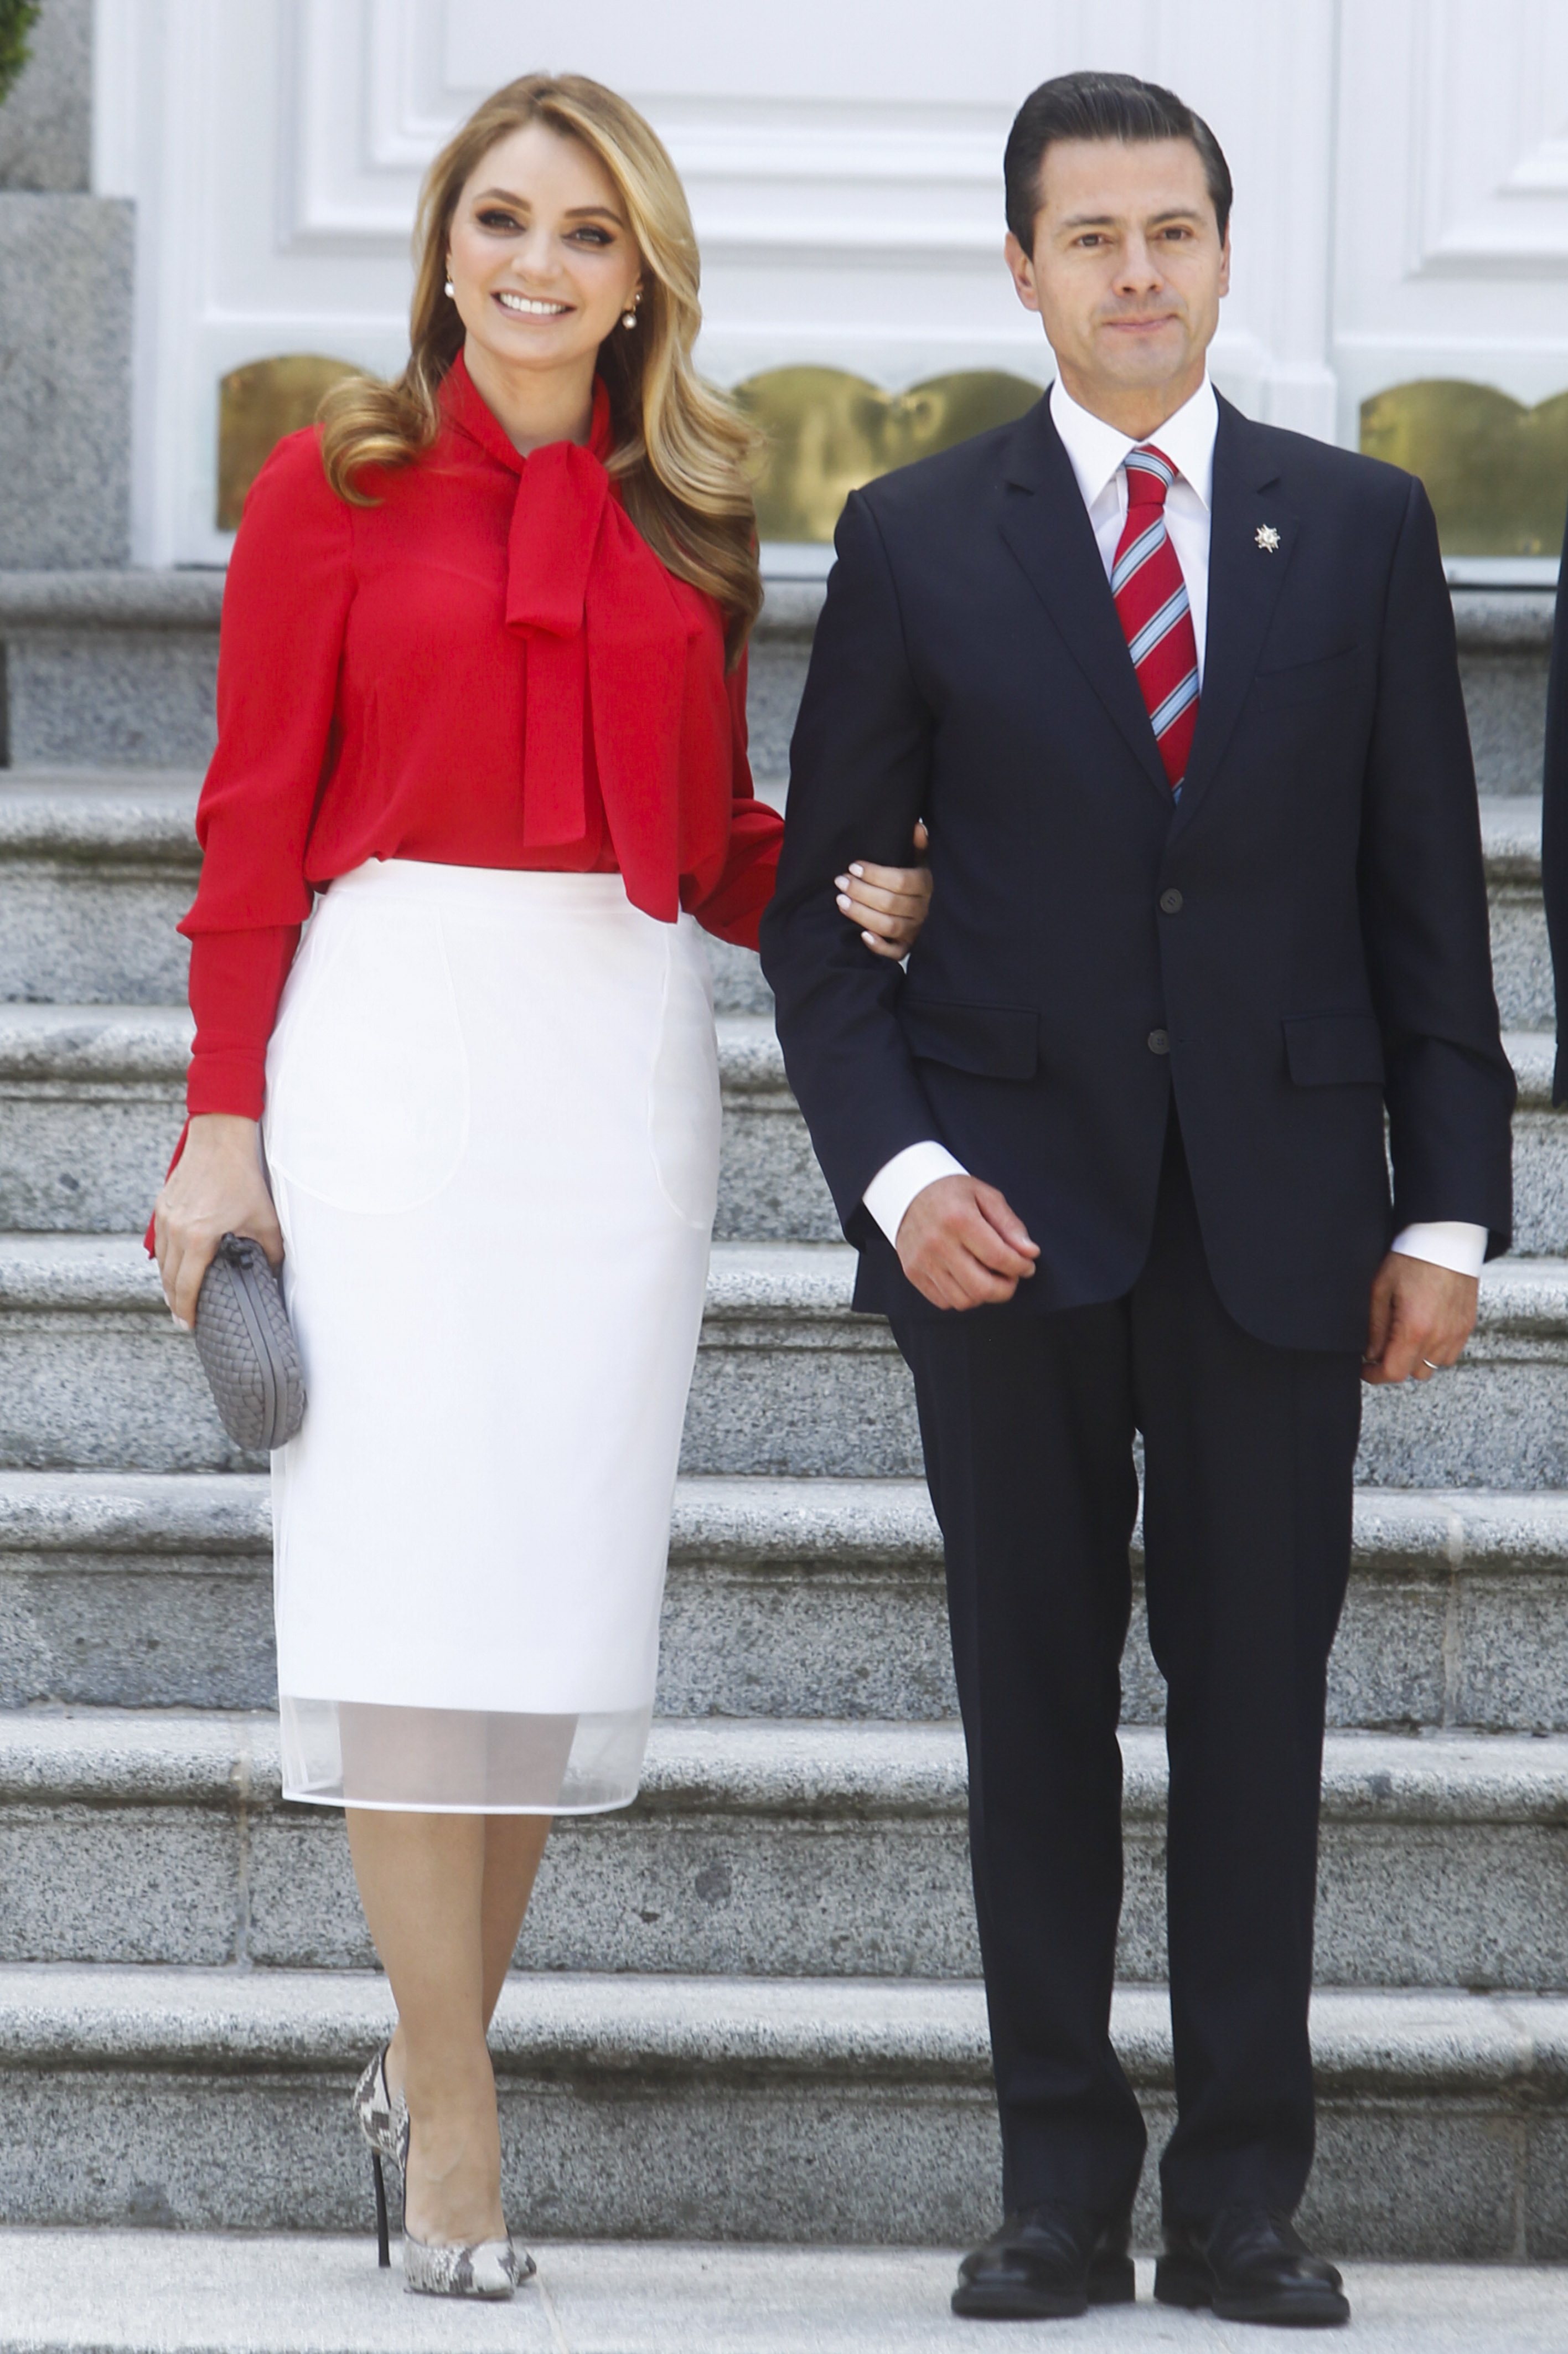 King Felipe and Queen Letizia attend a Lunch with Enrique Pena Nieto and Angelica Rivera at Zarzuela Palace in Madrid, Spain. <P> Pictured: Enrique Pe�a Nieto and Angelica Rivera <B>Ref: SPL1686616  250418  </B><BR/> Picture by: Michael Murdock / Splash News<BR/> </P><P> <B>Splash News and Pictures</B><BR/> Los Angeles:310-821-2666<BR/> New York:212-619-2666<BR/> London:870-934-2666<BR/> <span id=